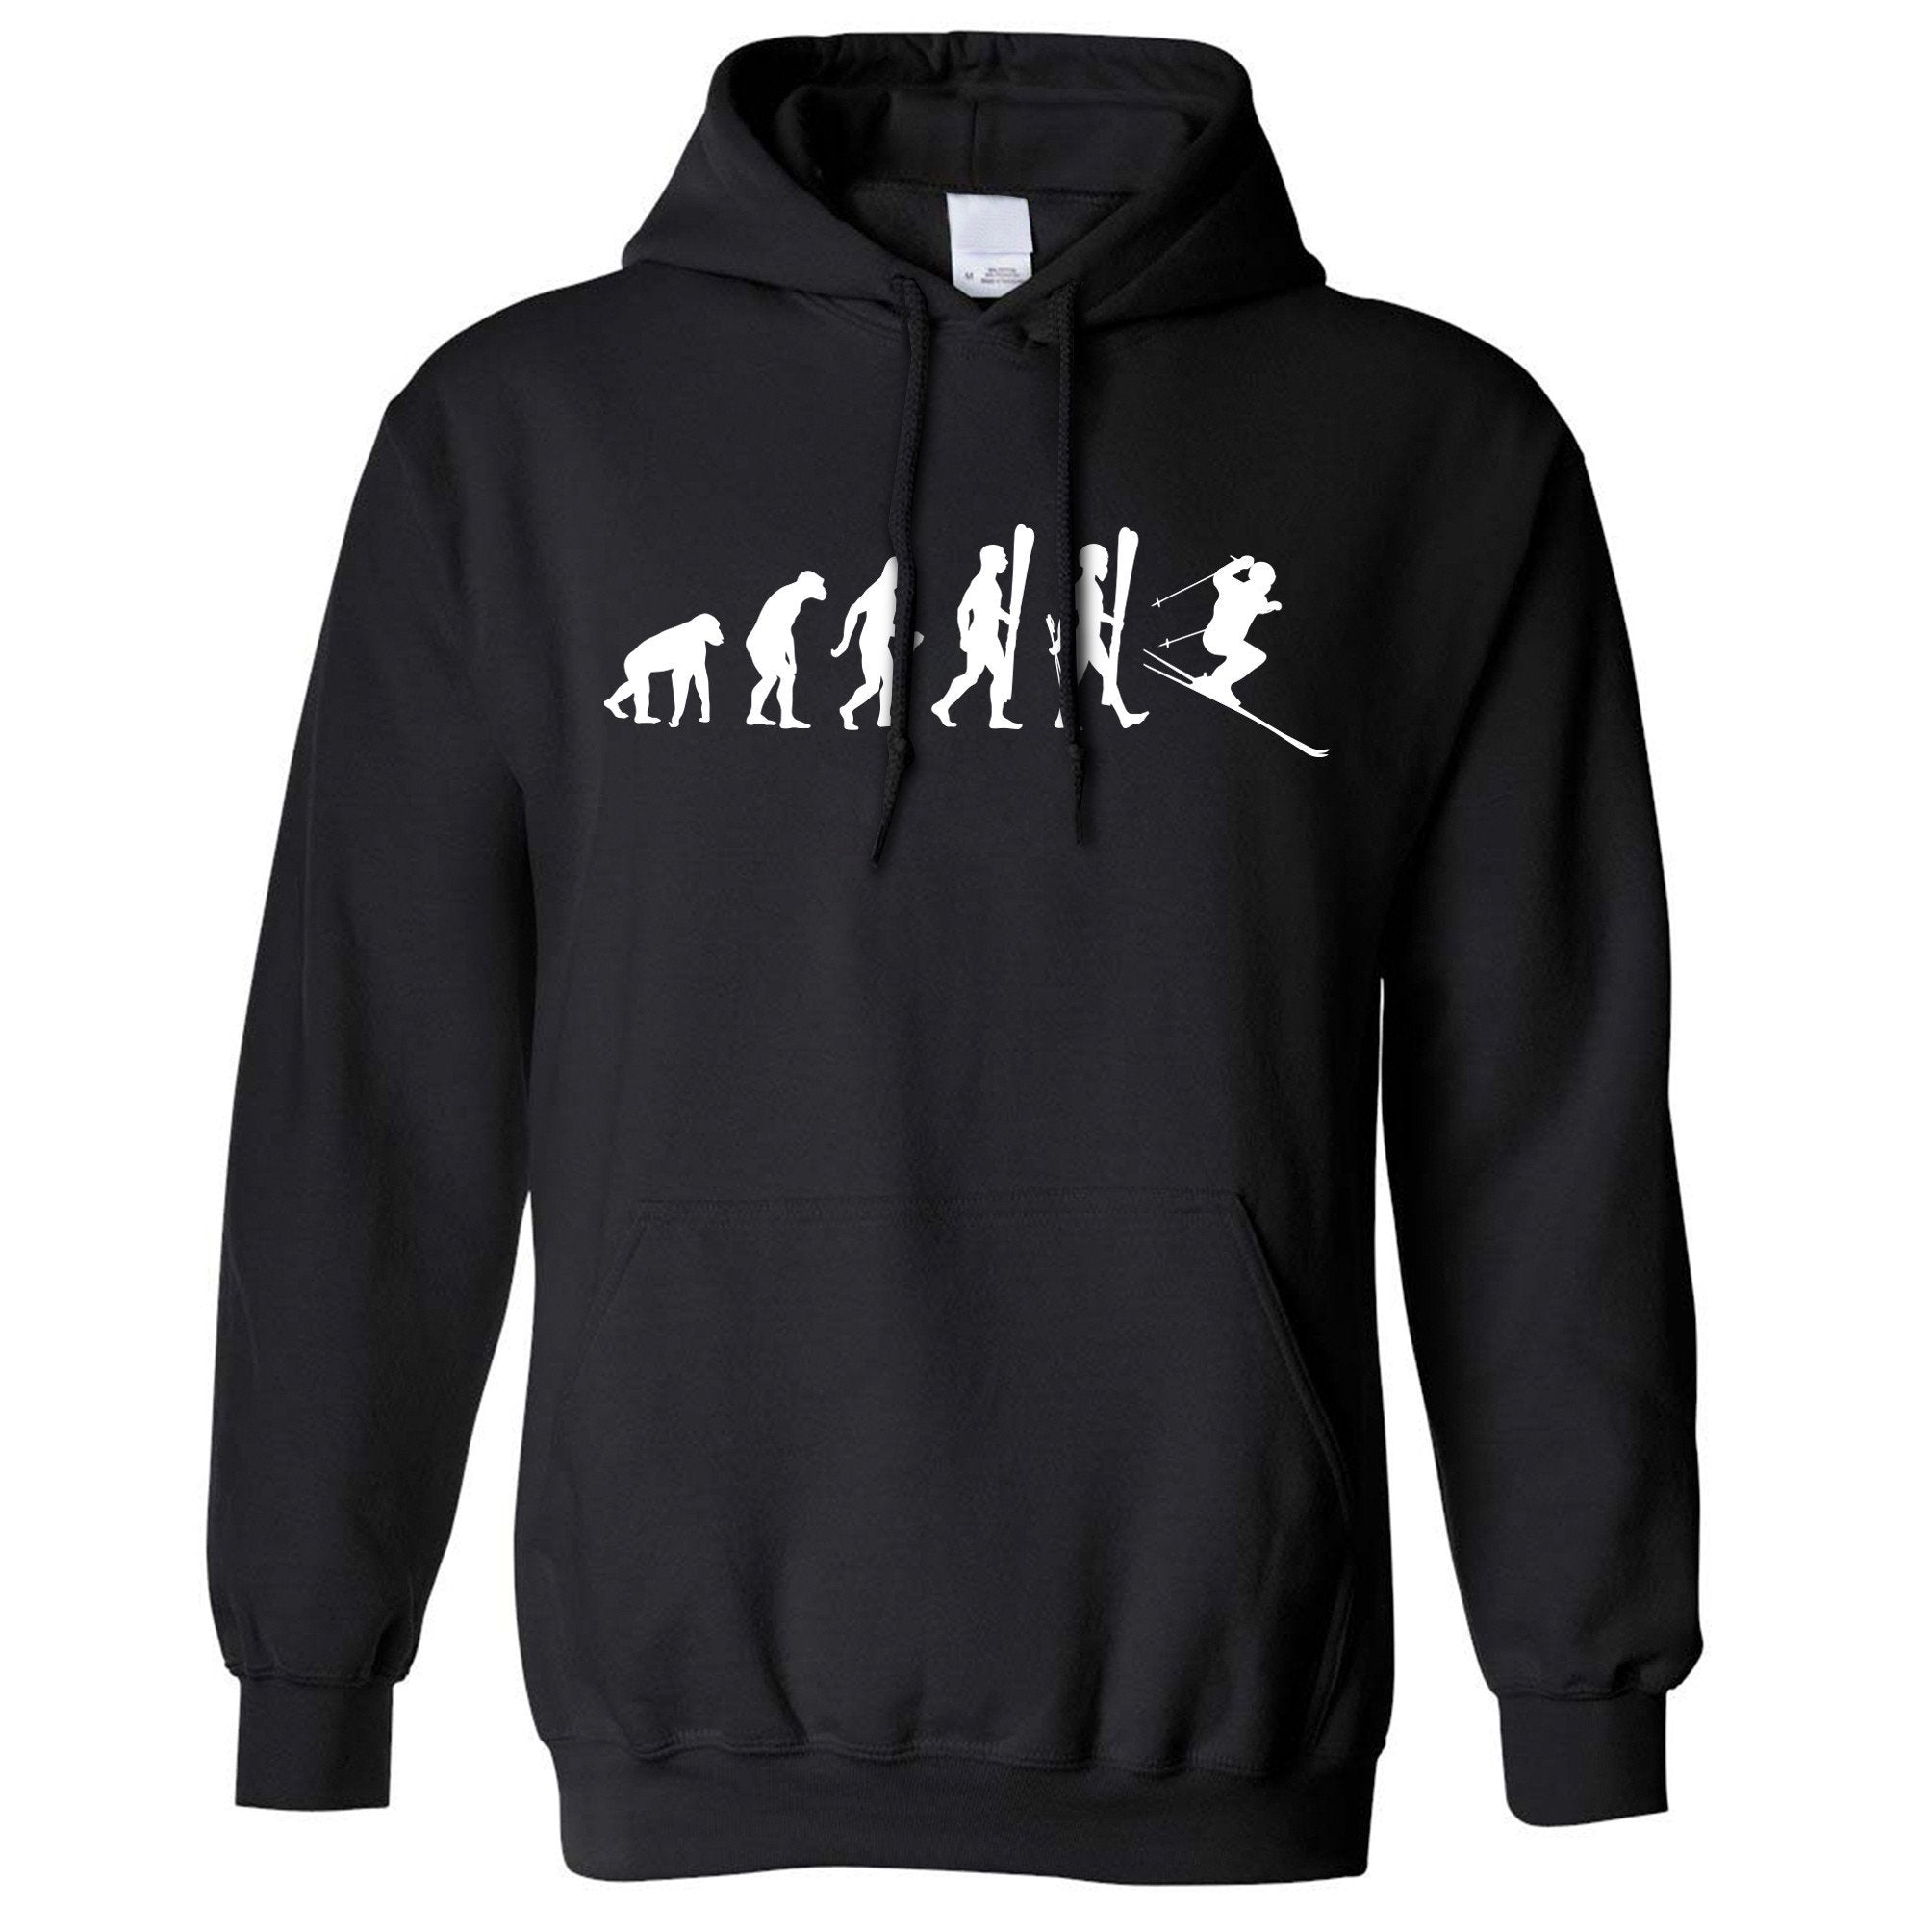 Sports Hoodie The Evolution Of A Ski Jumper Hooded Jumper